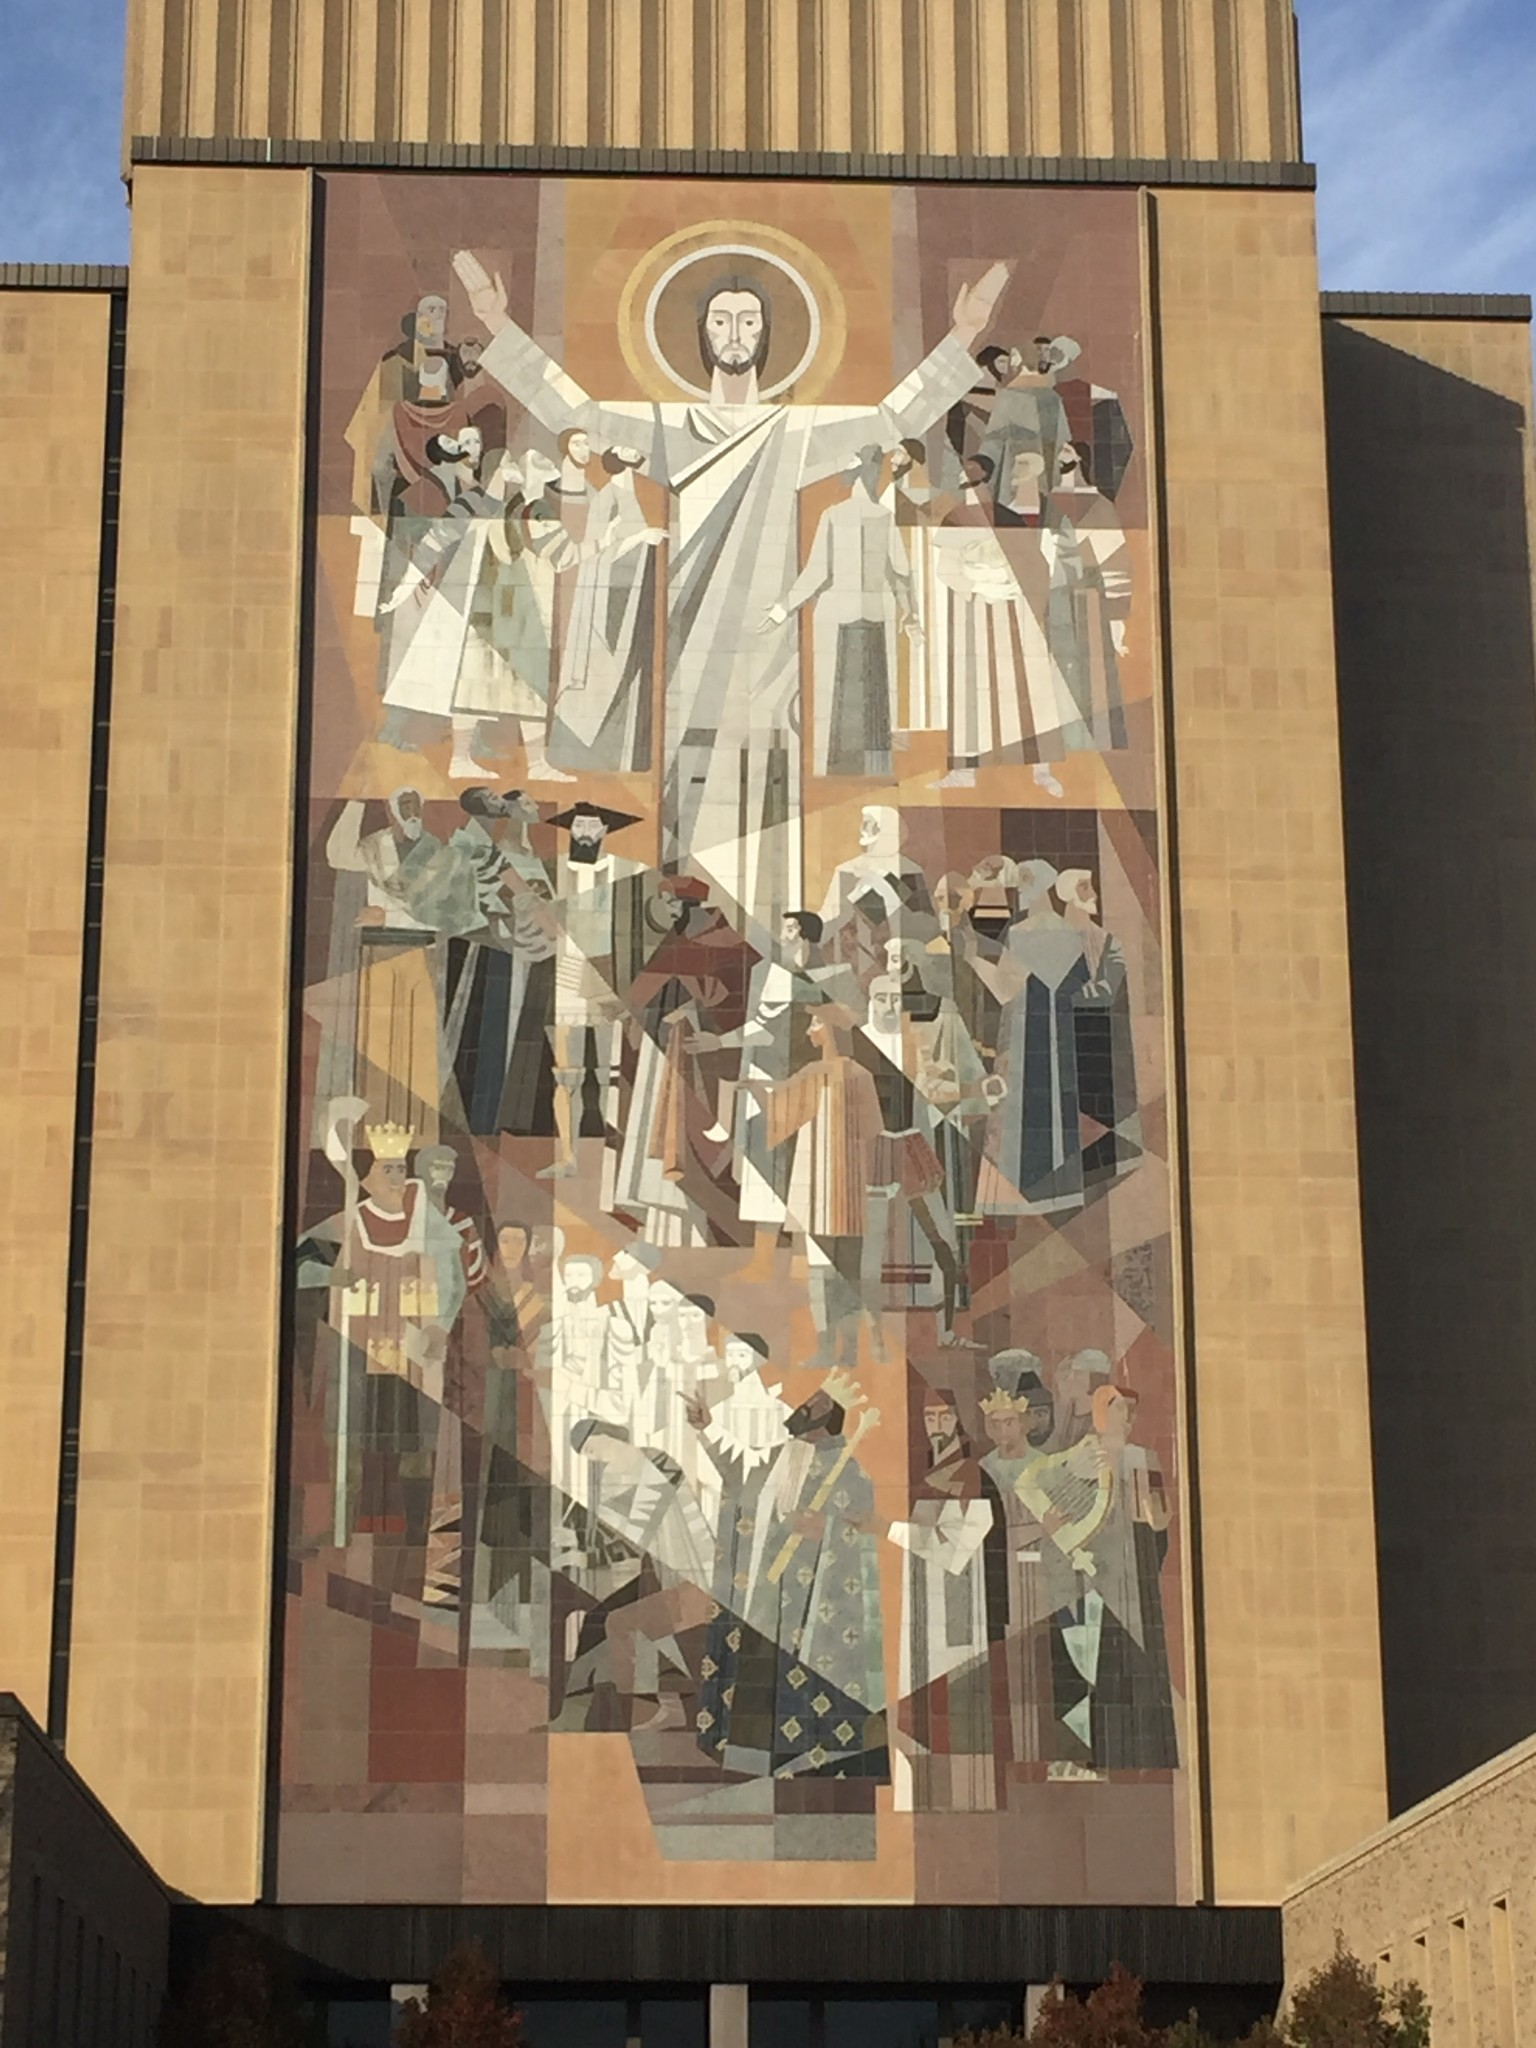 Notre dame mural photo